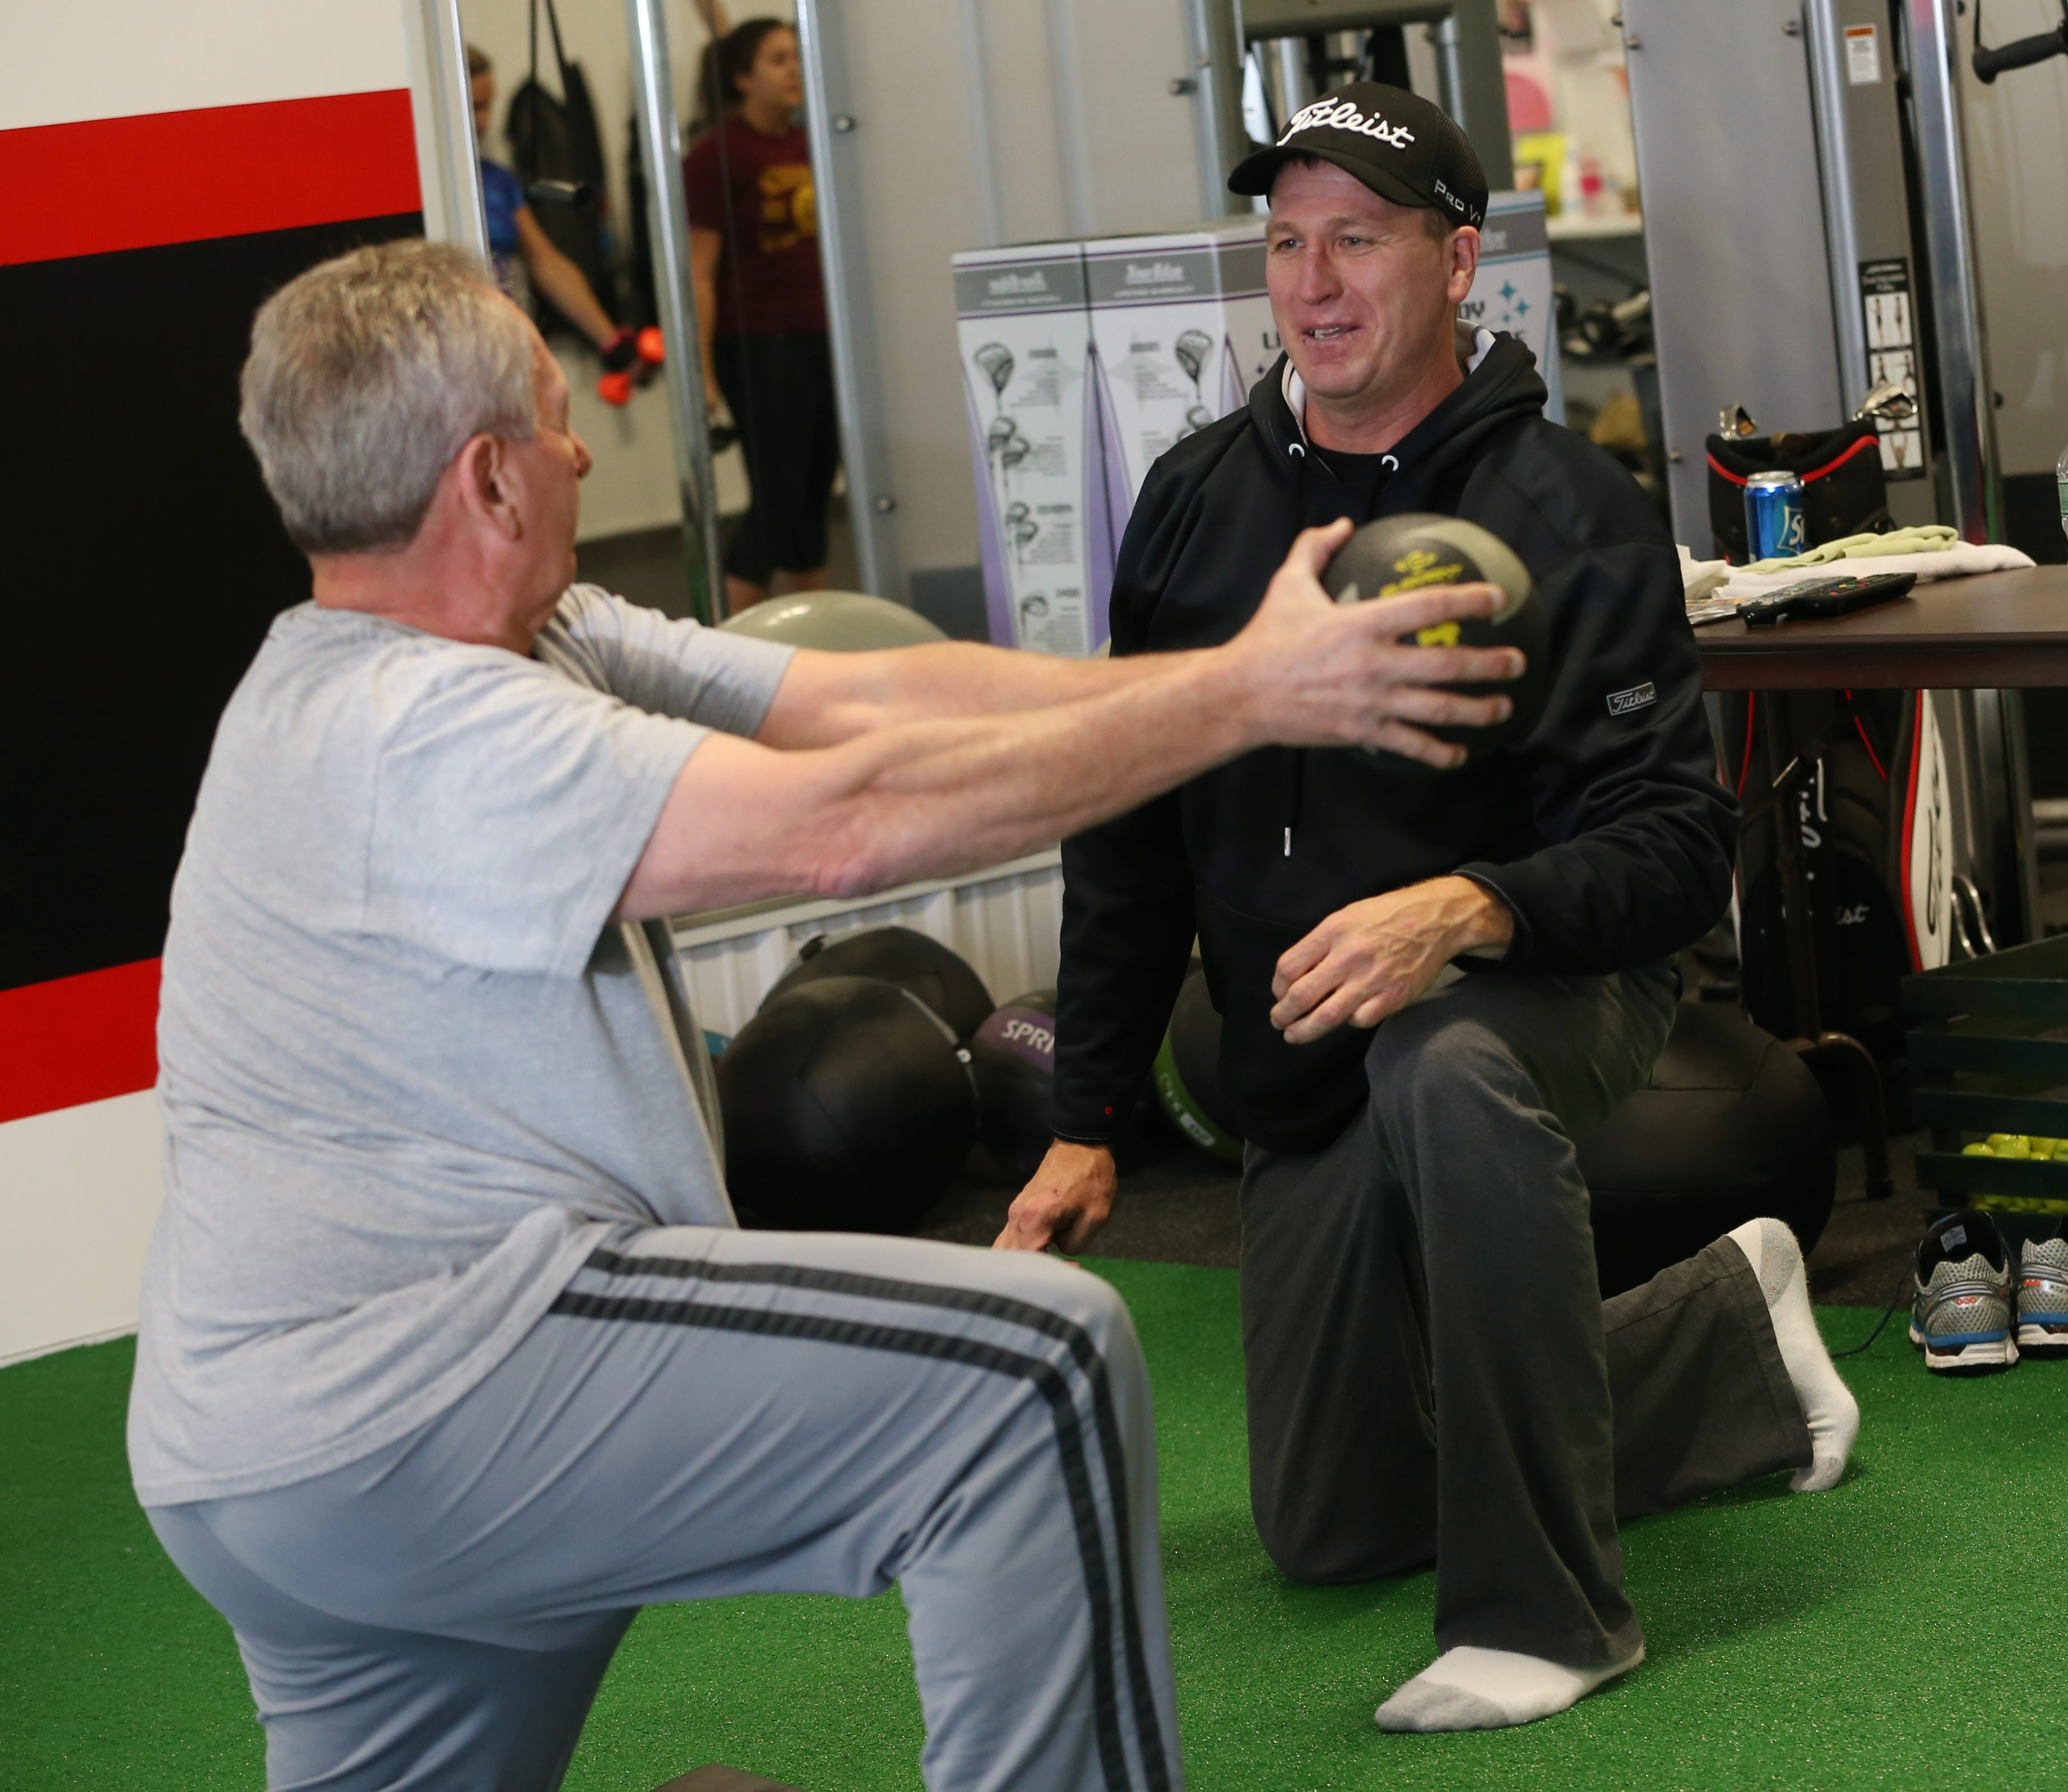 """""""We're interested in the entire person. """"  – Mark Schraven, who with his wife, Michelle, opened Advantage Fitness in Lancaster. Above, Mark Schraven works with Dan Amatura."""